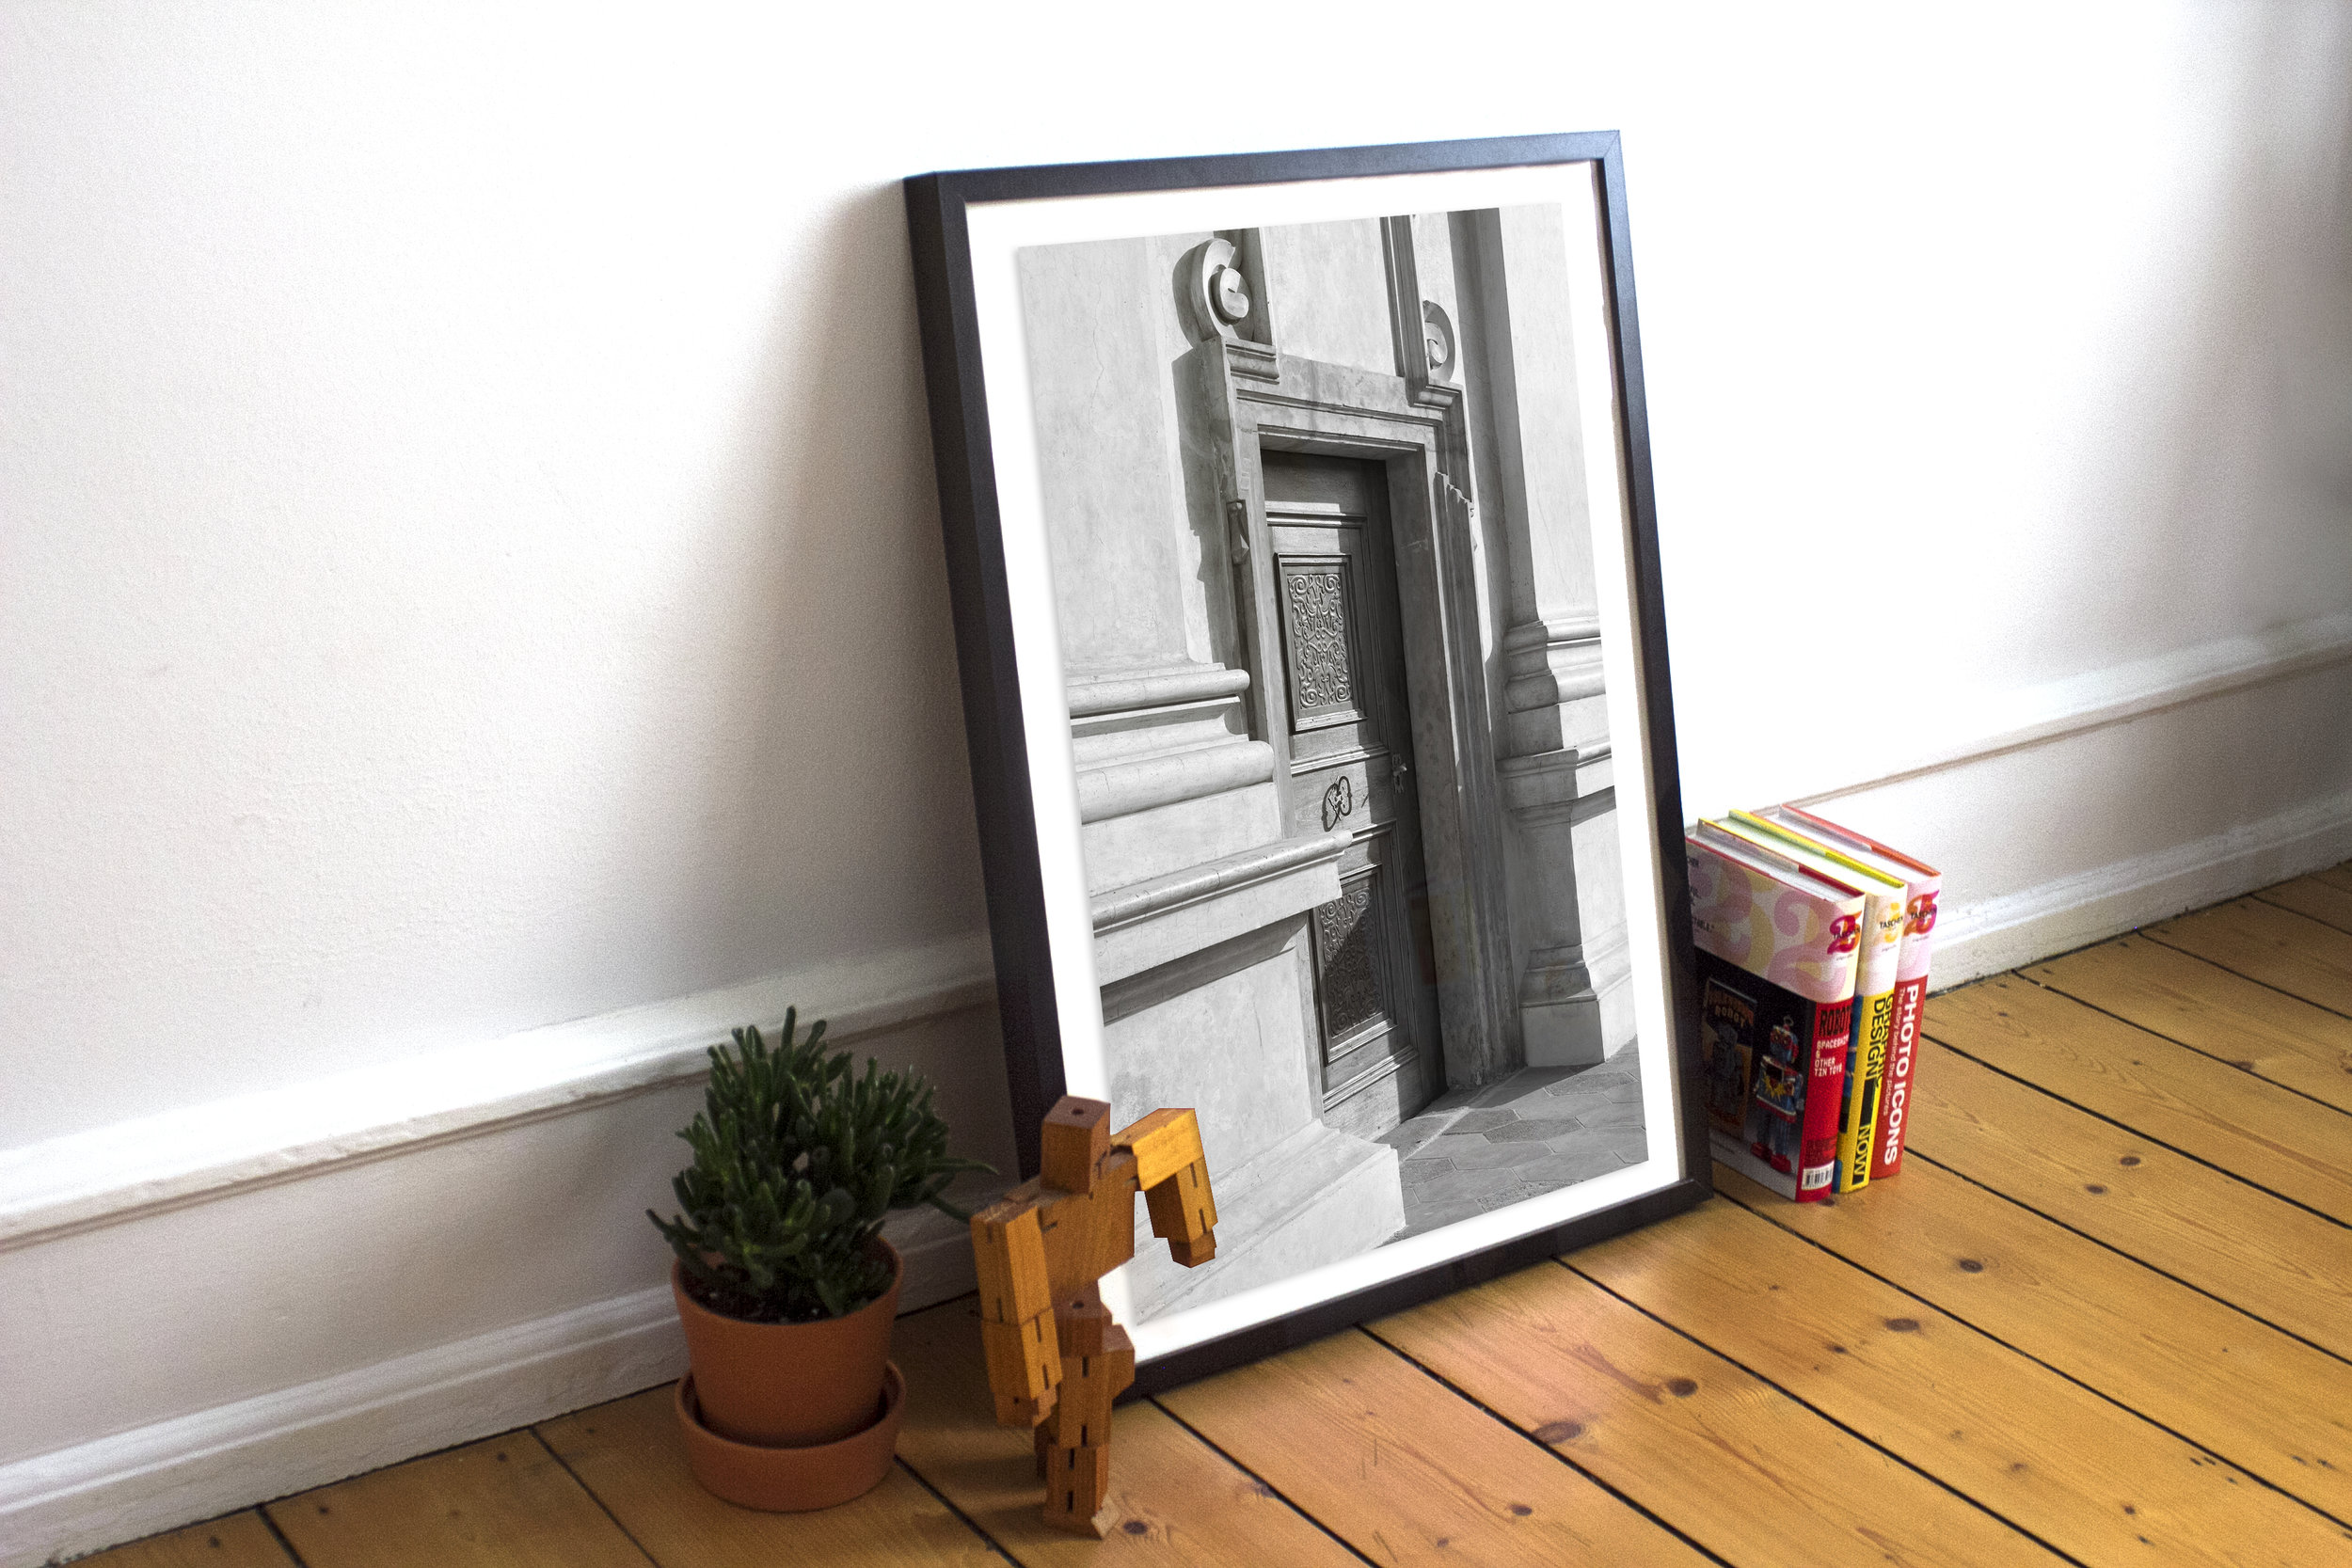 MOCKUP-02-NDprague door.jpg